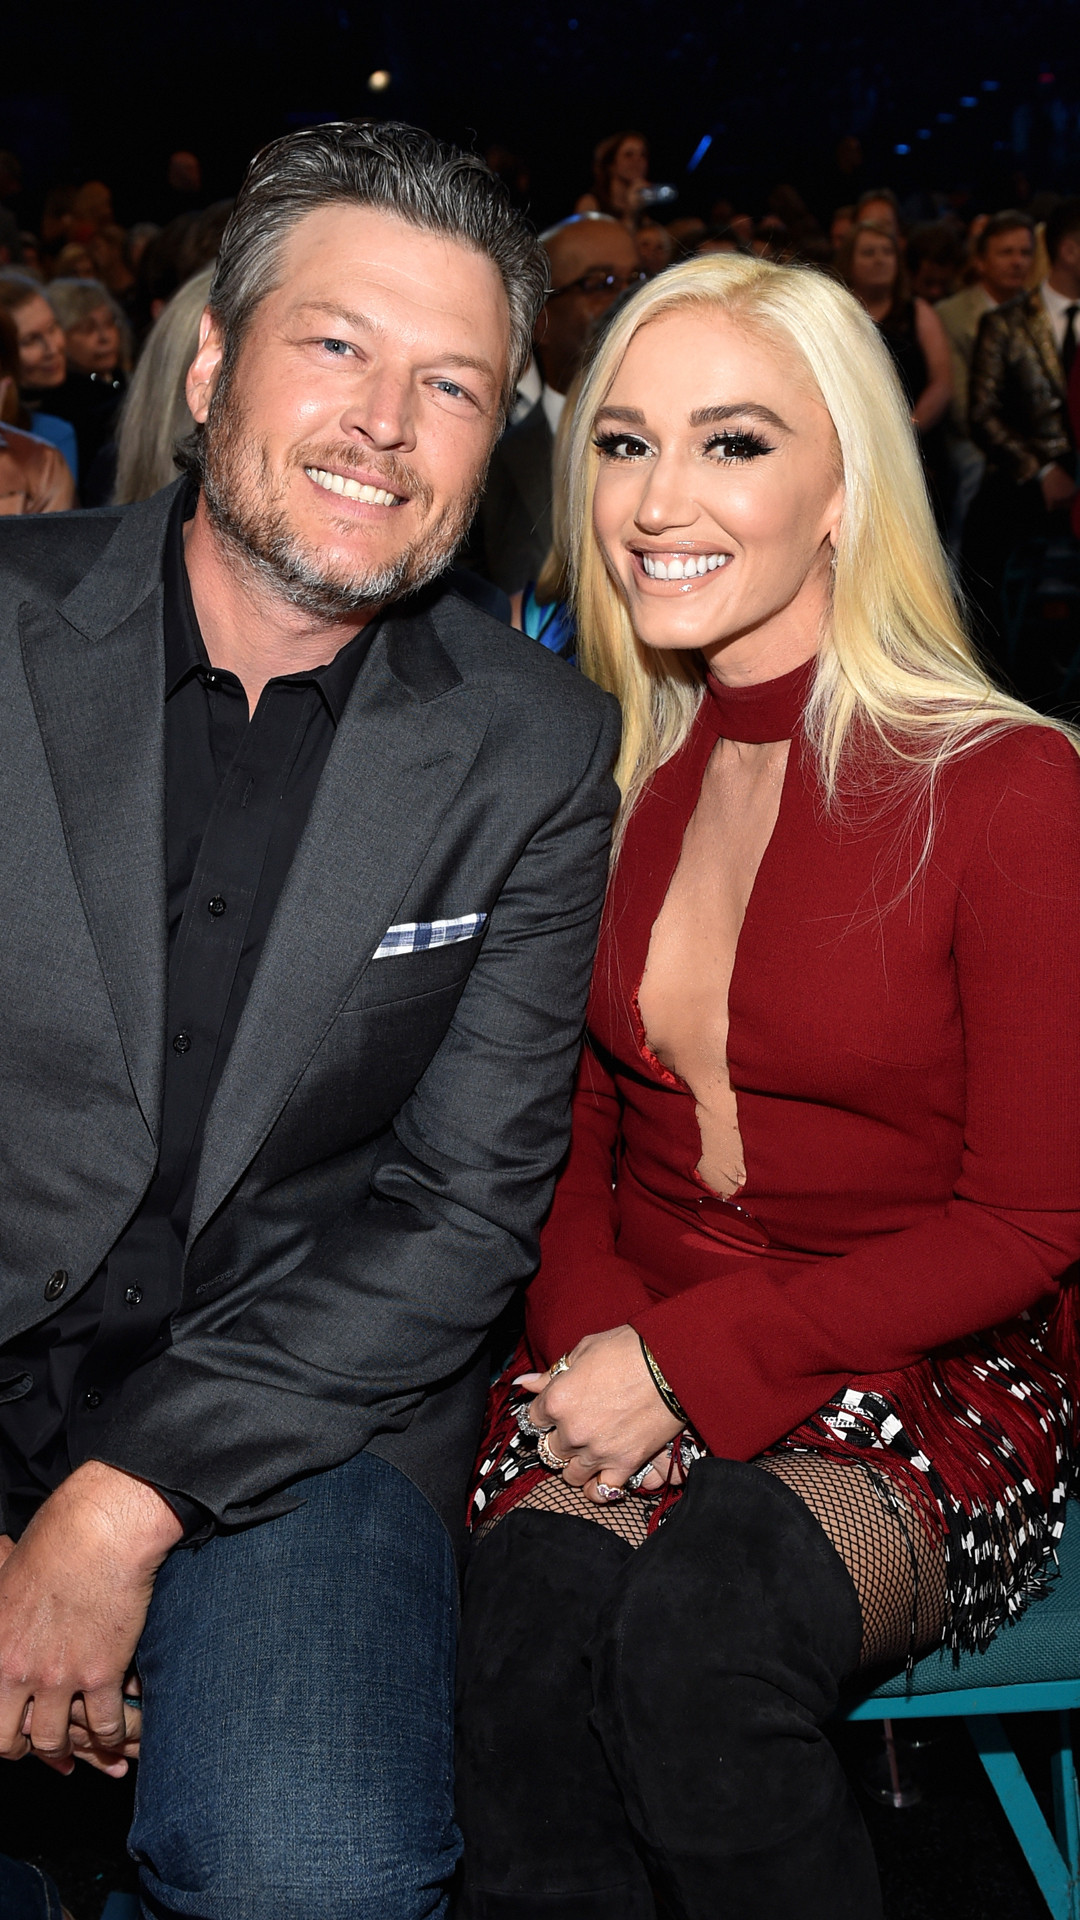 Gwen Stefani and Blake Shelton Sing No Doubt Together at ACM